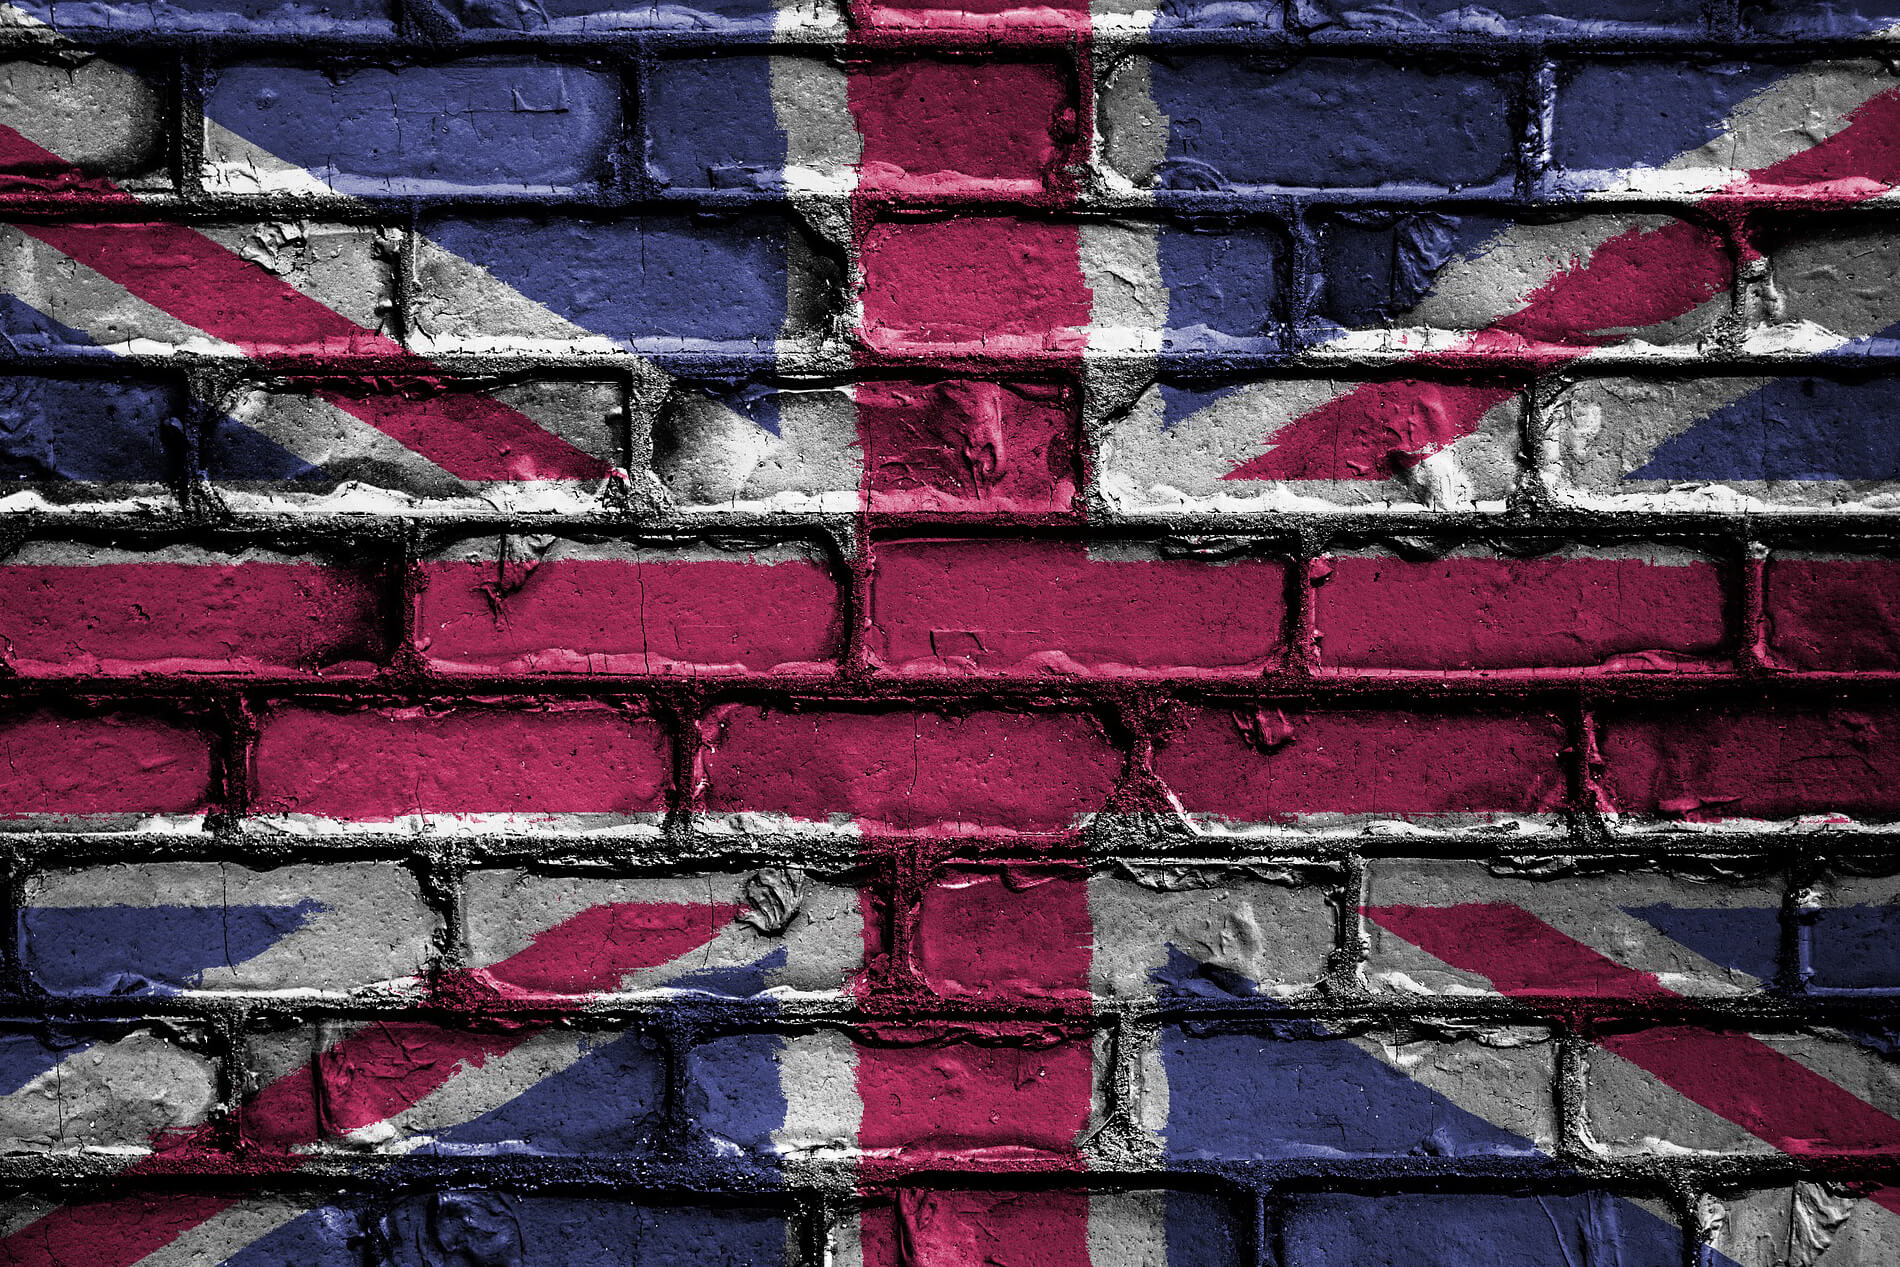 Discrimination and islamophobia in the UK against Muslims